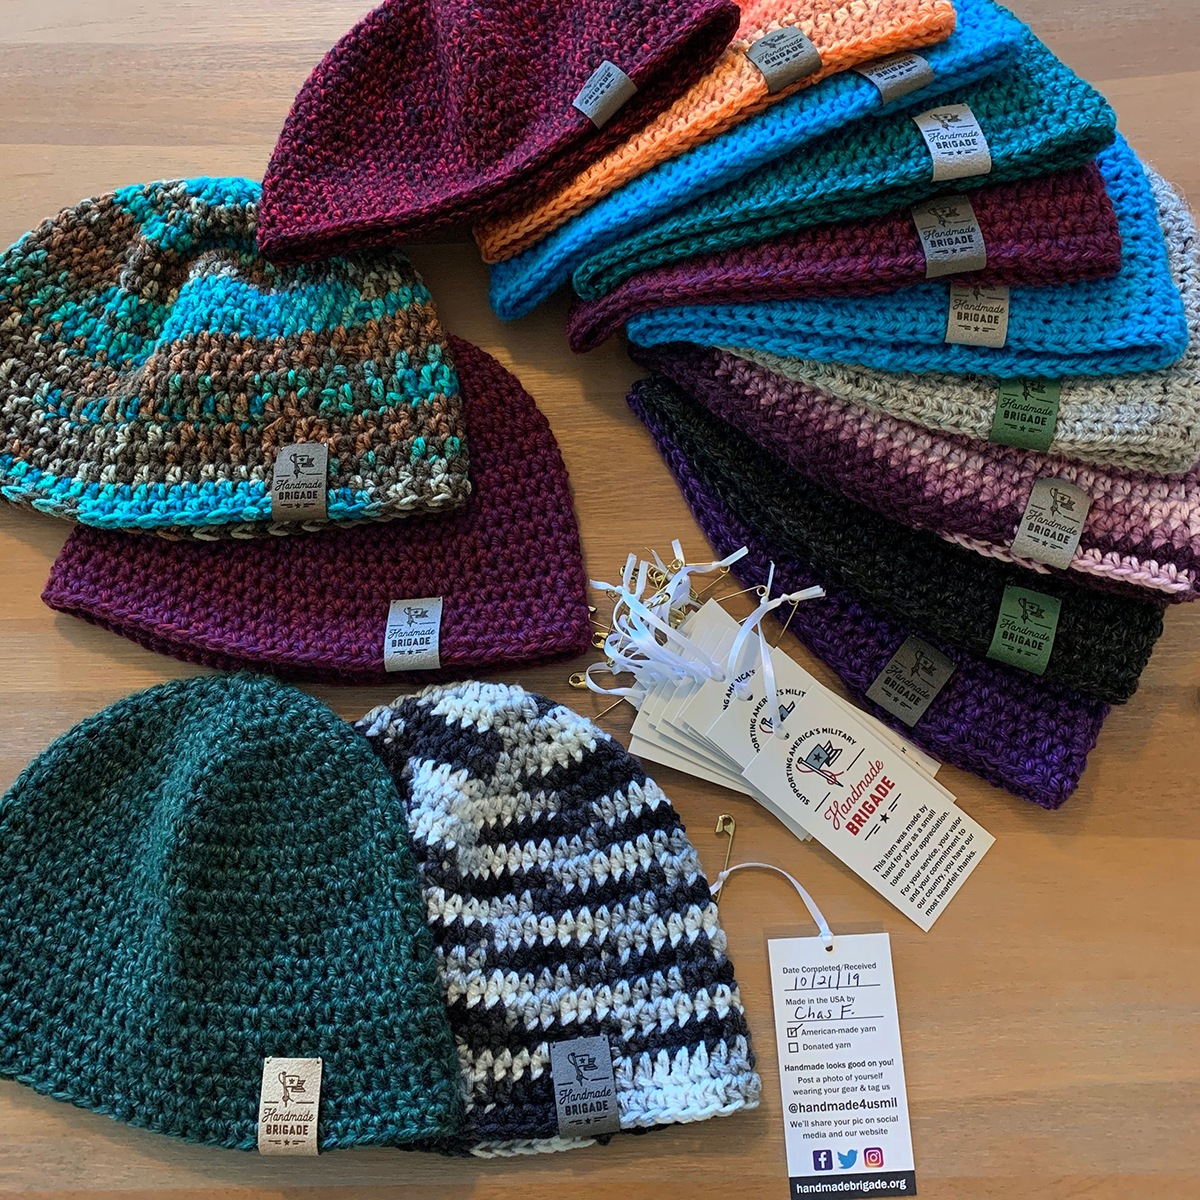 Knitted hats by Handmade Brigade with hang tags